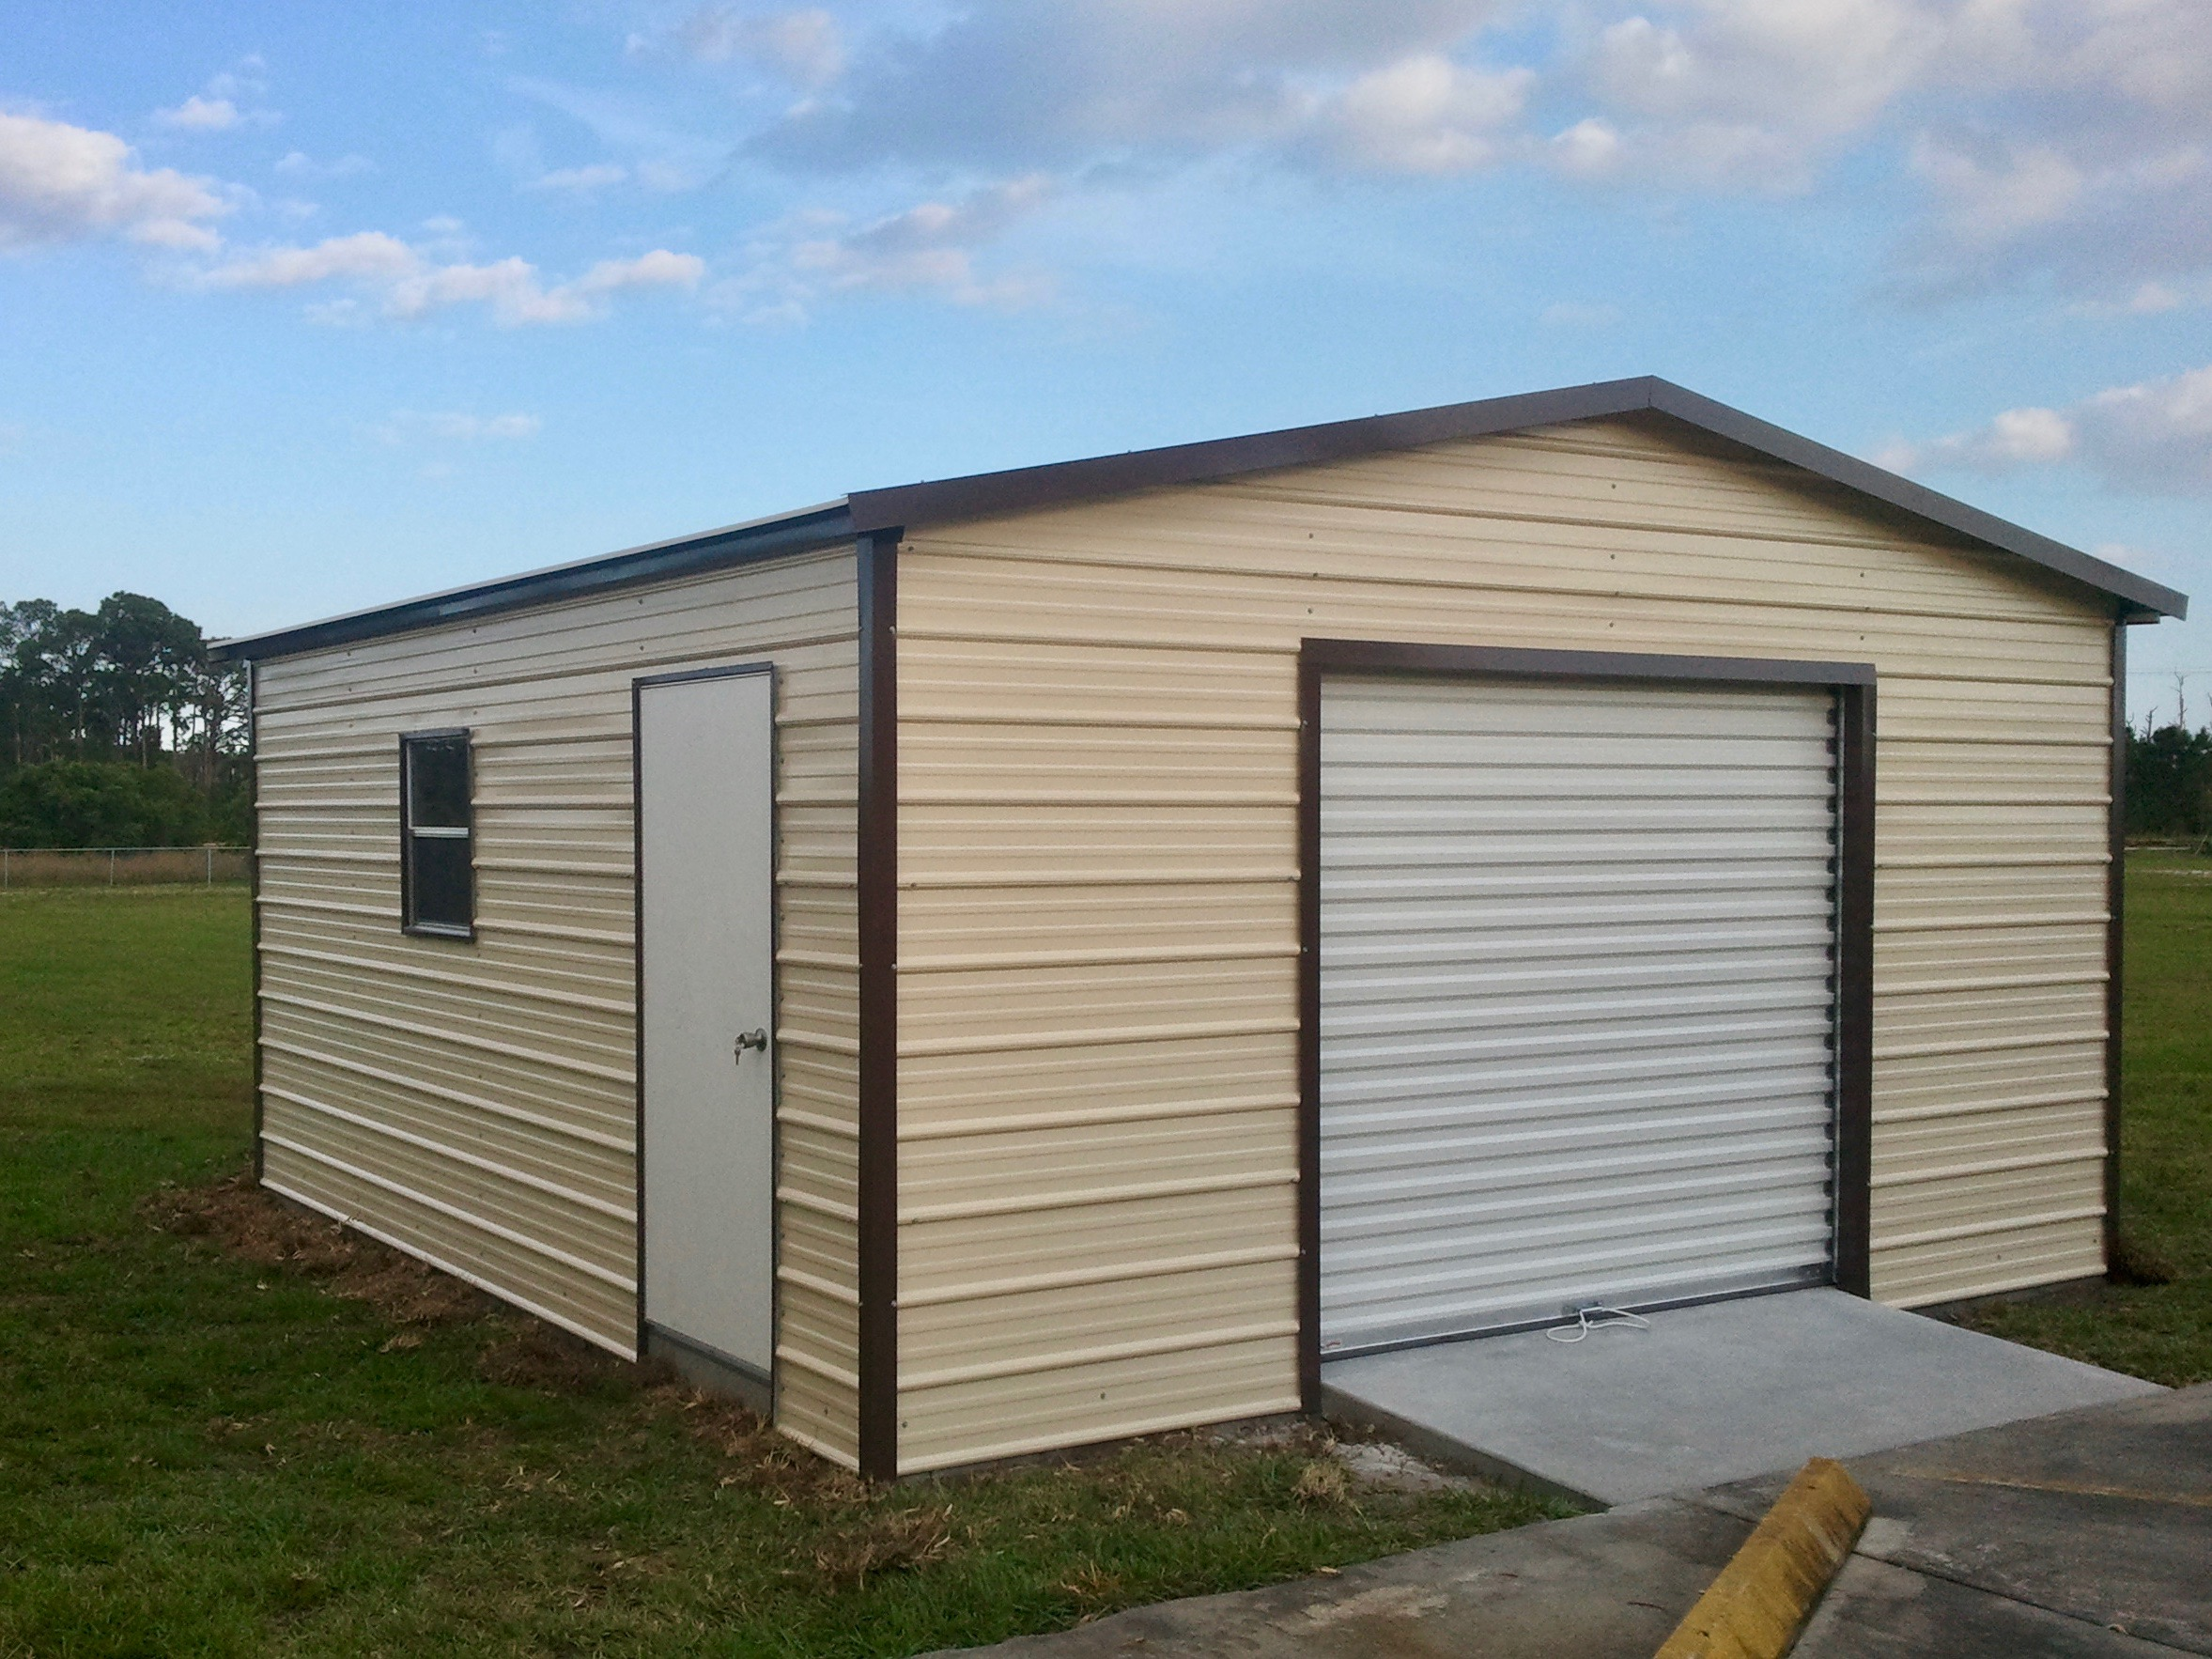 showcase freedom florida a miami garage fl and building metal steel buildings